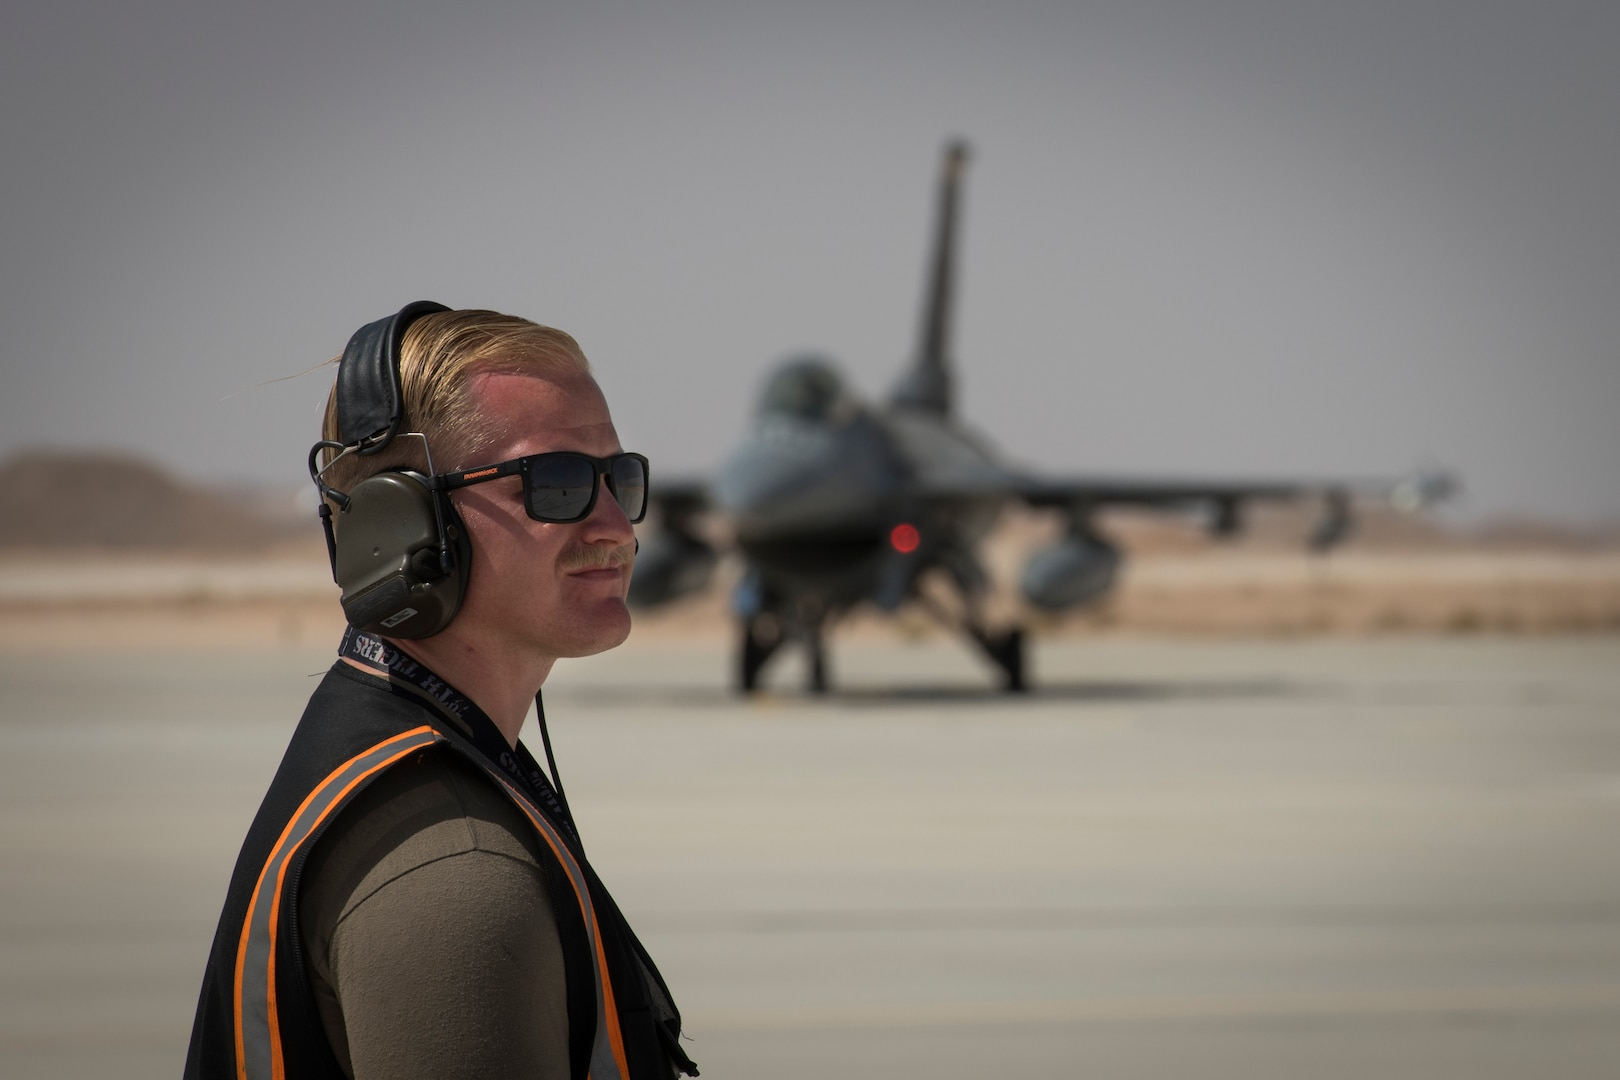 """U.S Air Force Staff Sgt. David Williams, a crew chief with the 380th Expeditionary Aircraft Maintenance Squadron prepares to marshal a U.S. Air Force F-16 """"Viper"""" Fighting Falcon assigned to the 79th Expeditionary Fighter Squadron at an undisclosed location in the U.S. Central Command area of responsibility, Feb. 14, 2020."""